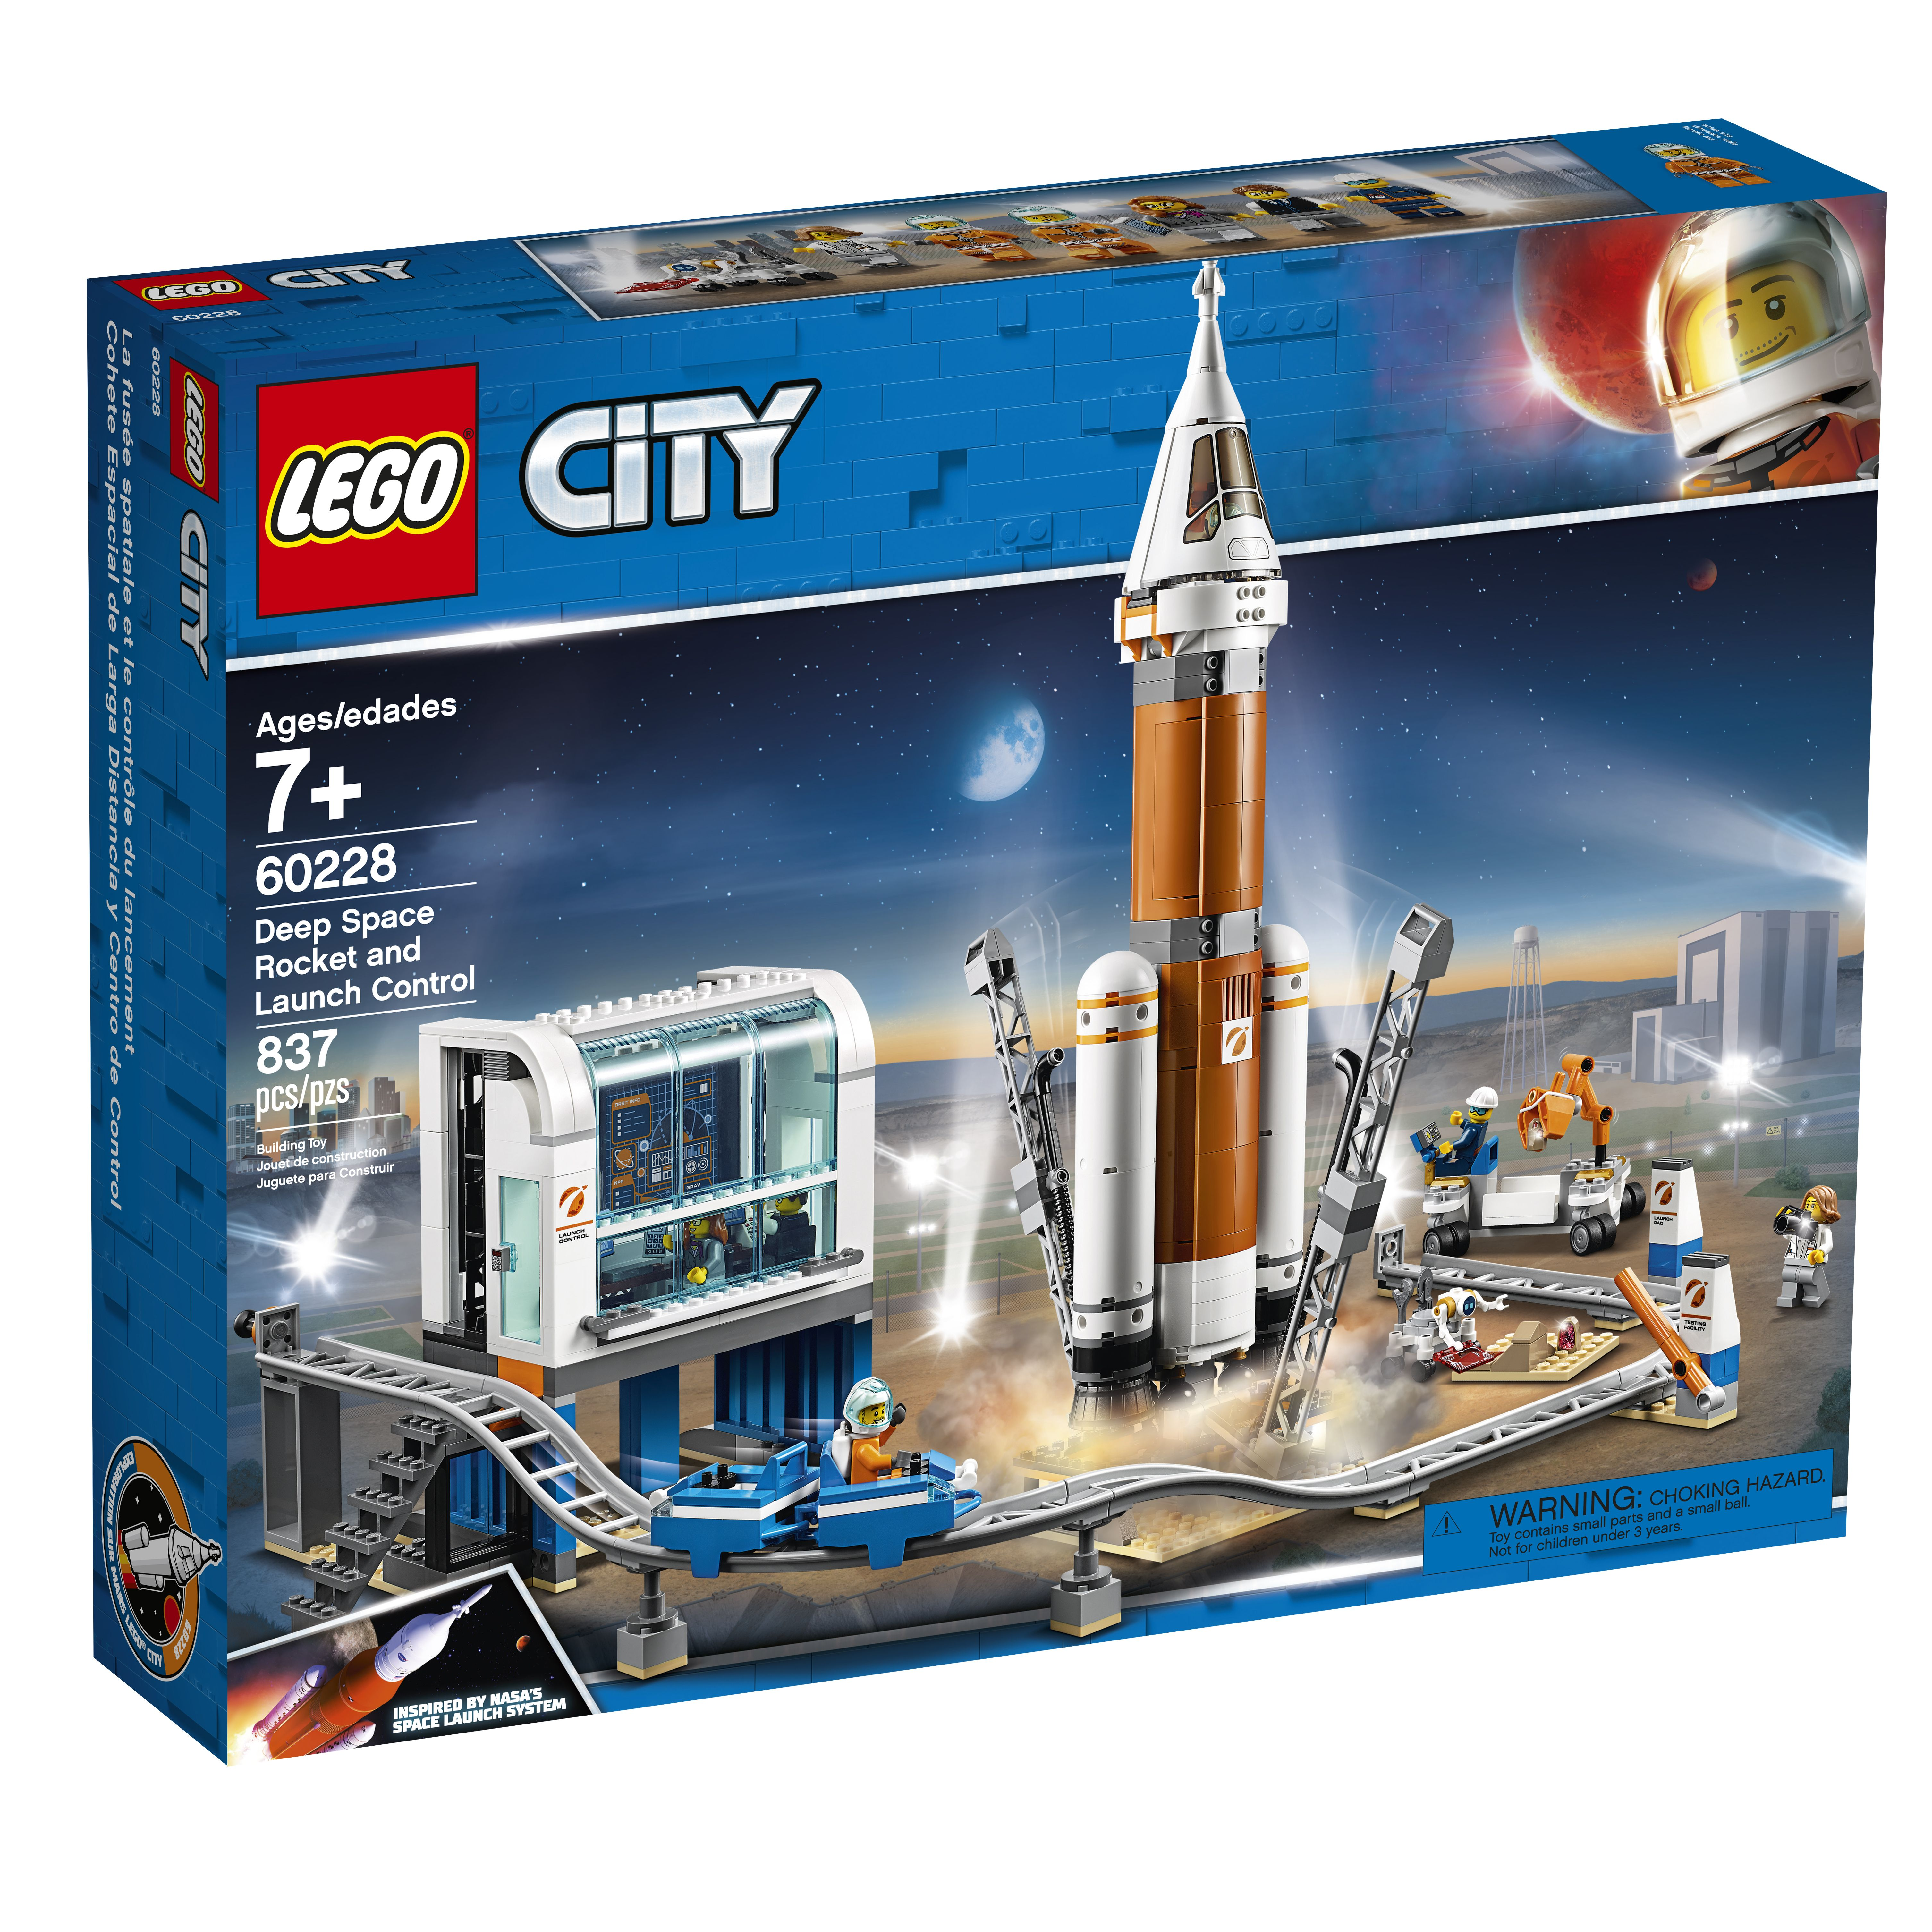 Lego Is Launching New Nasa Themed Sets This Month They Re Out Of This World Lego City Space Lego City Lego